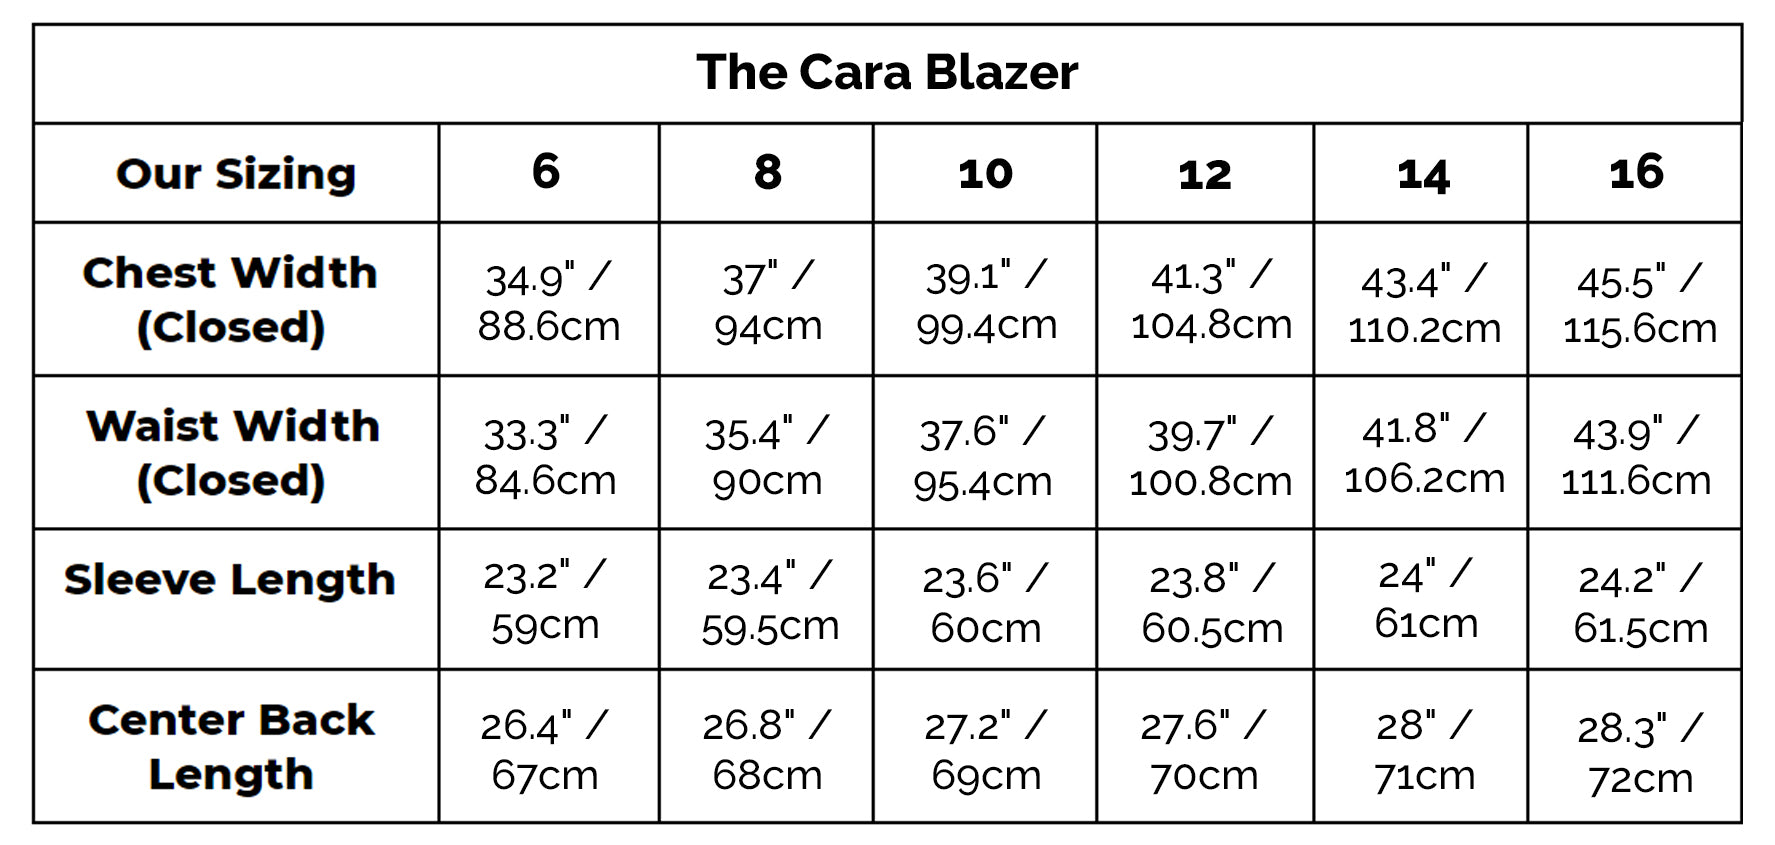 The Cara Blazer Size Guide